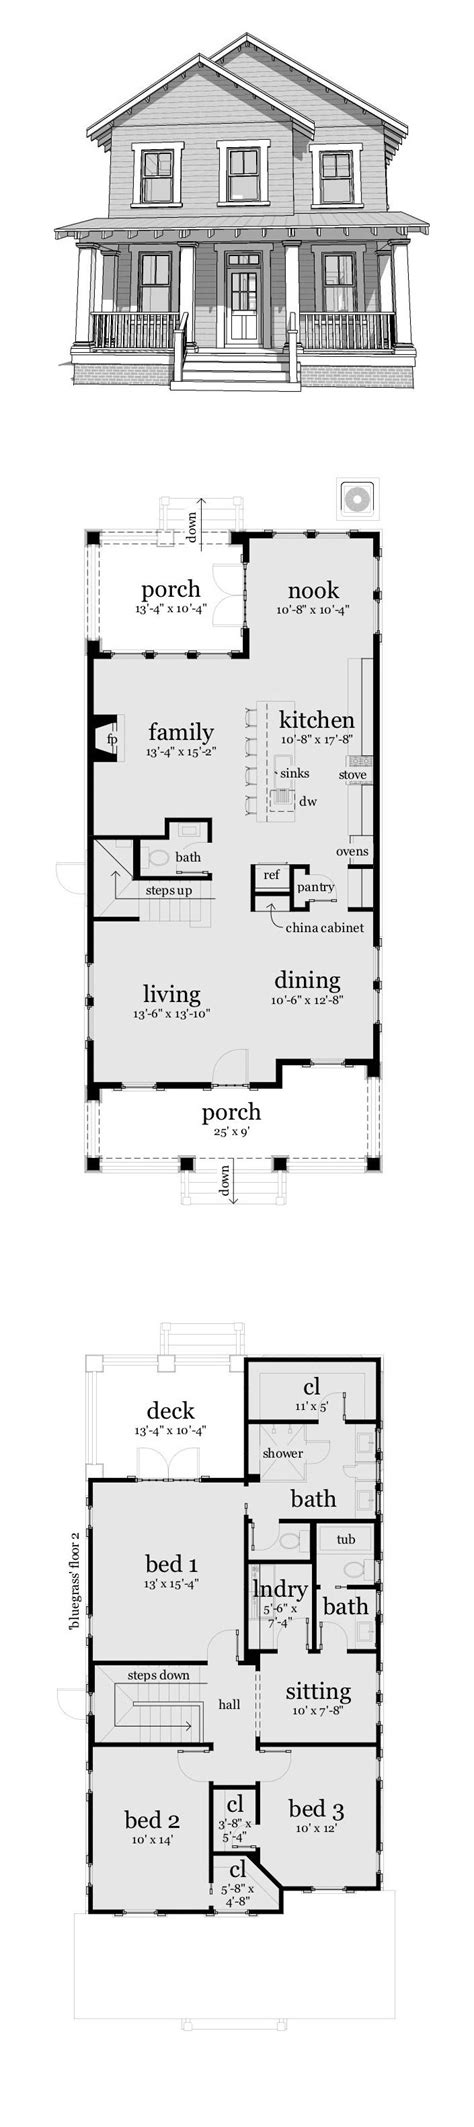 narrow house plans ideas  pinterest